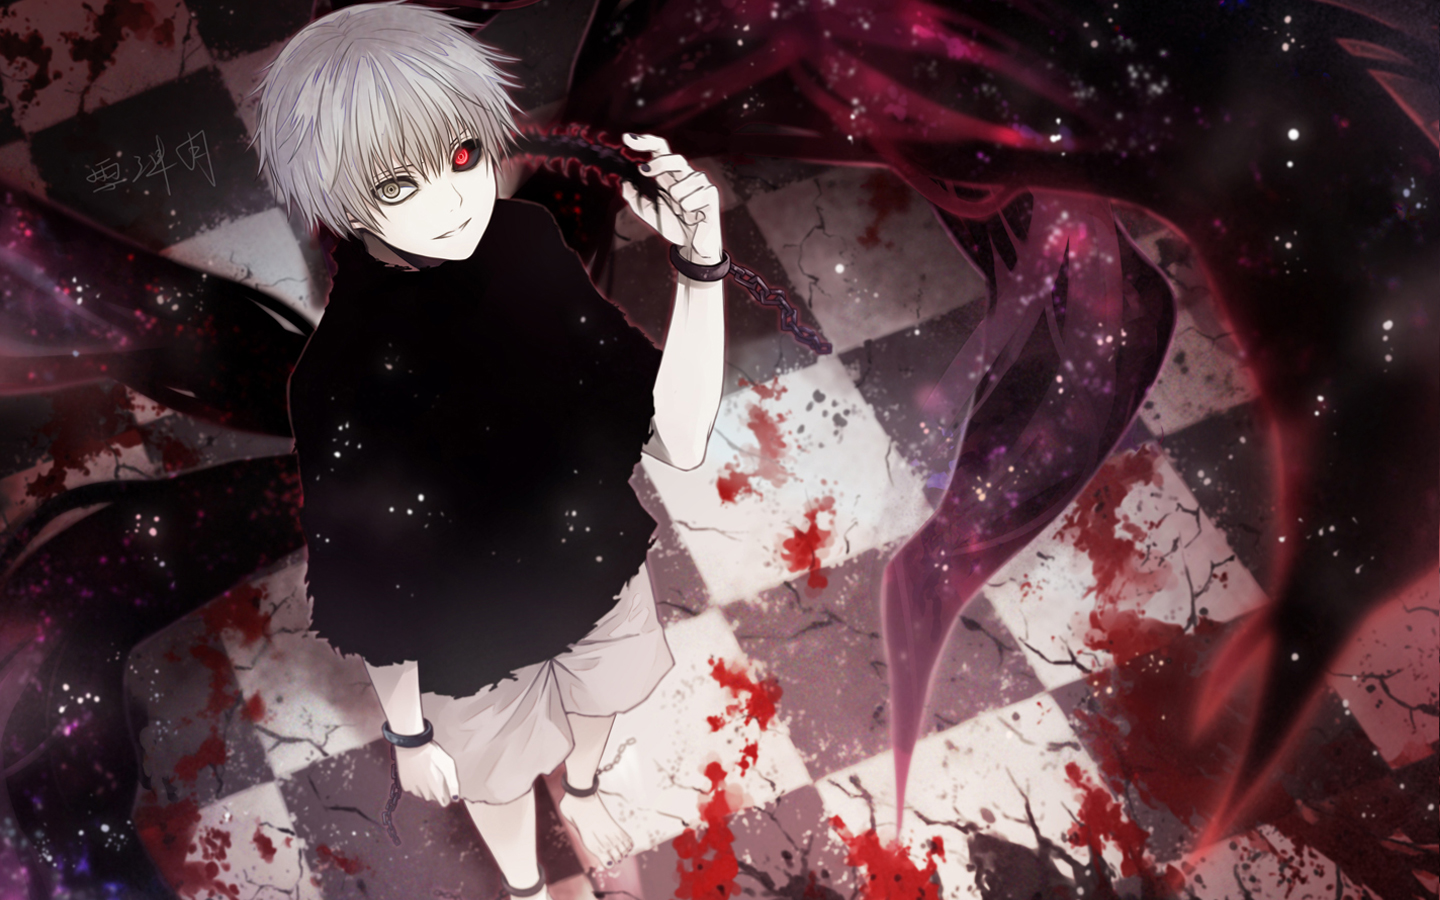 Http Wallanonforge Wp Content Uploads Anime TokyoGhoul F Kaneki Ken Picture Tokyo Ghoul Kagune 1440x900